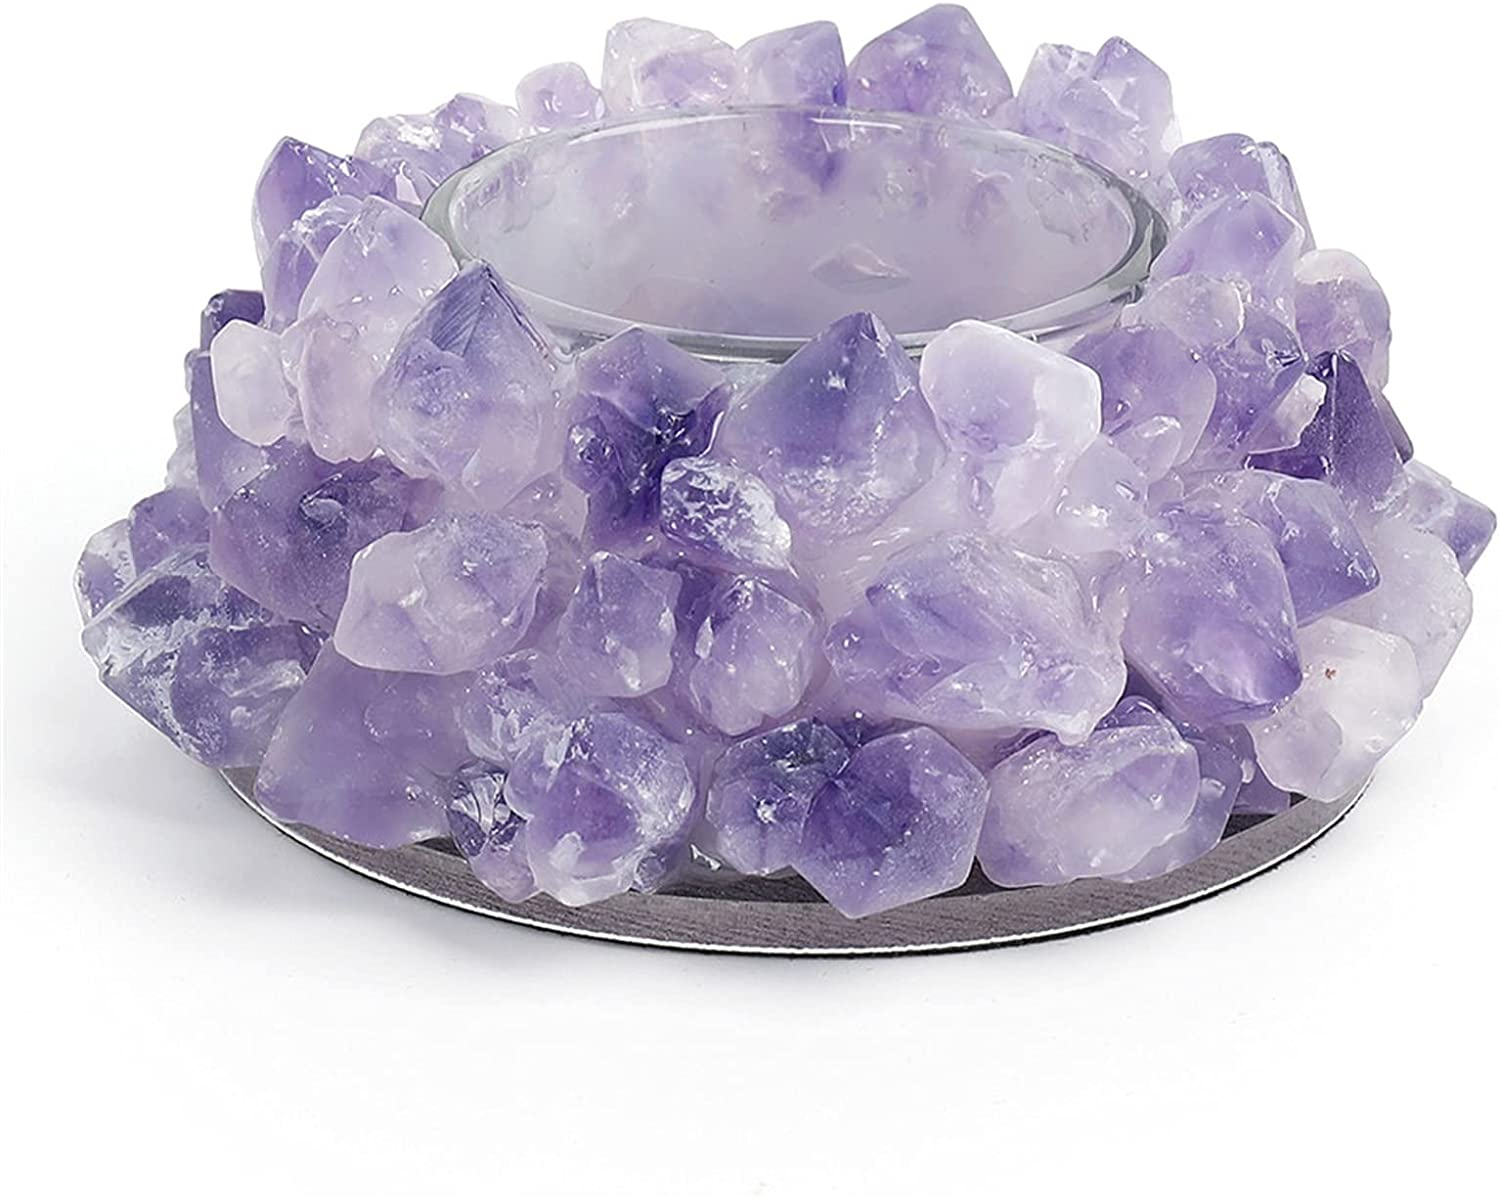 Sale special price MAXIAOTONG Nippon regular agency 1pcs Natural Amethyst Candlest Cluster Holders Candle